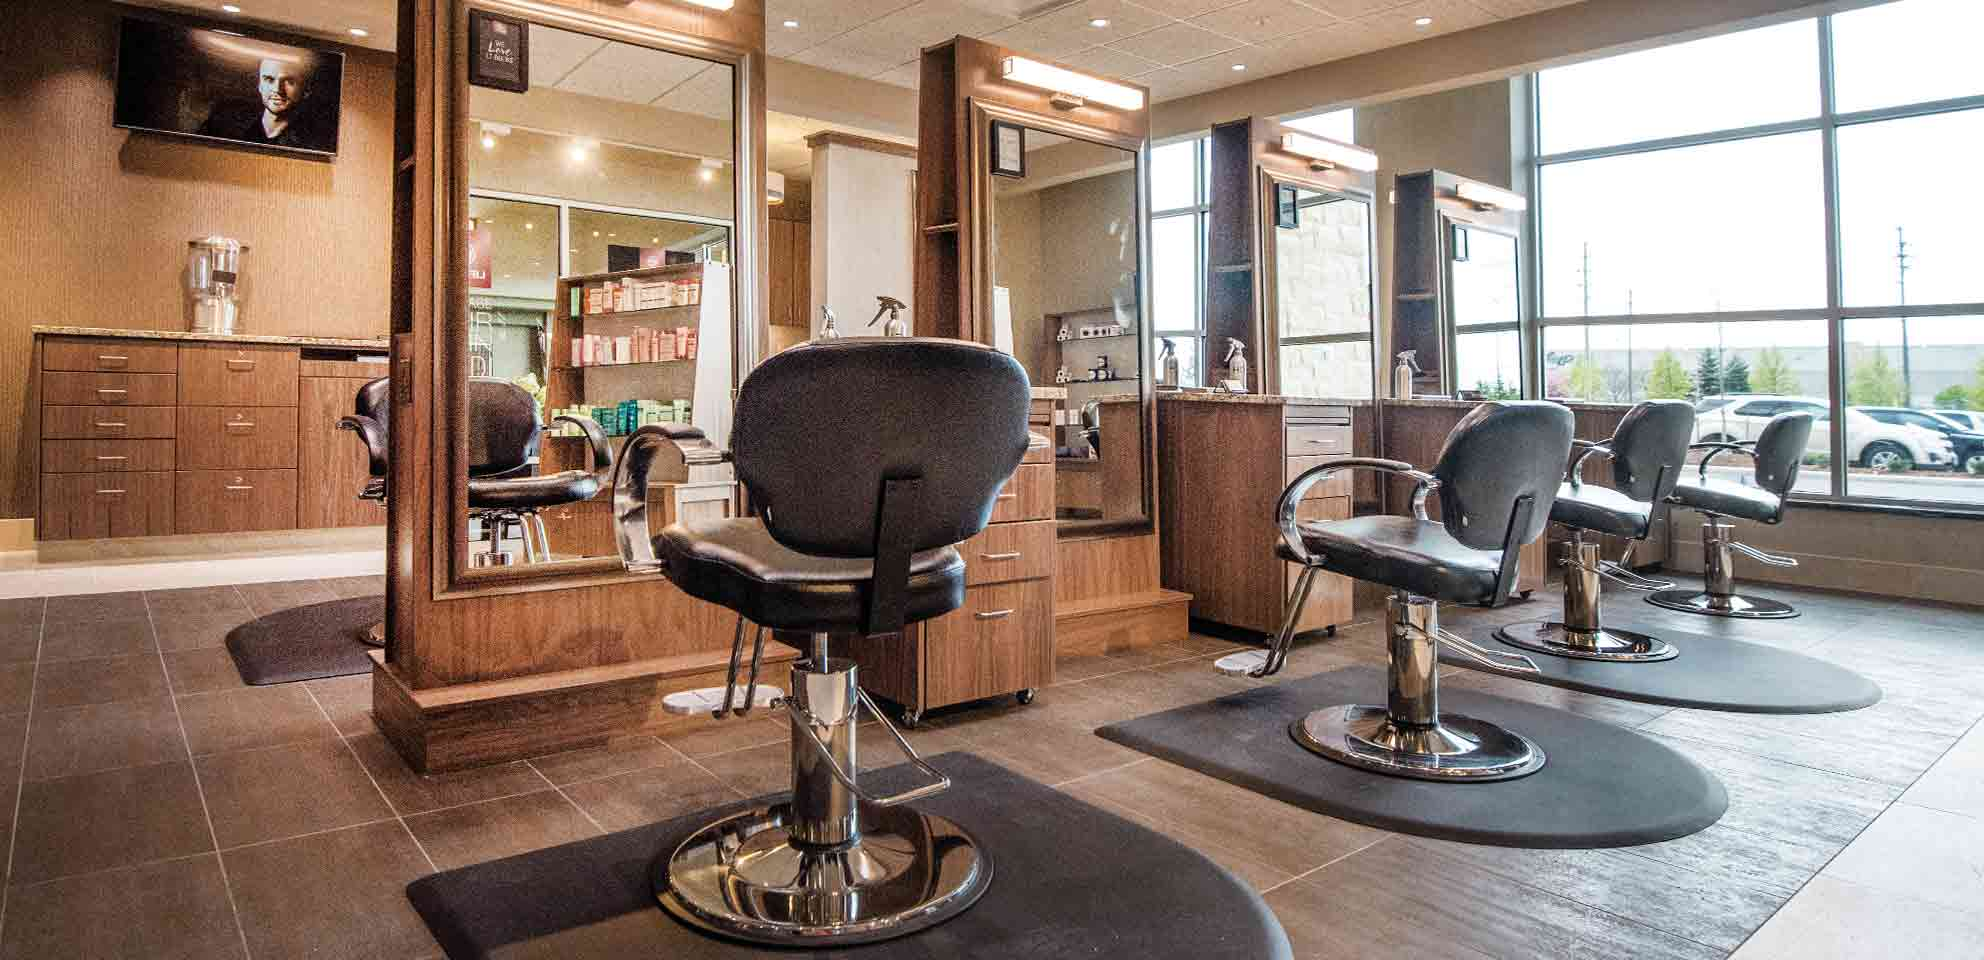 Four hair stylists' chairs and stations in a hair salon